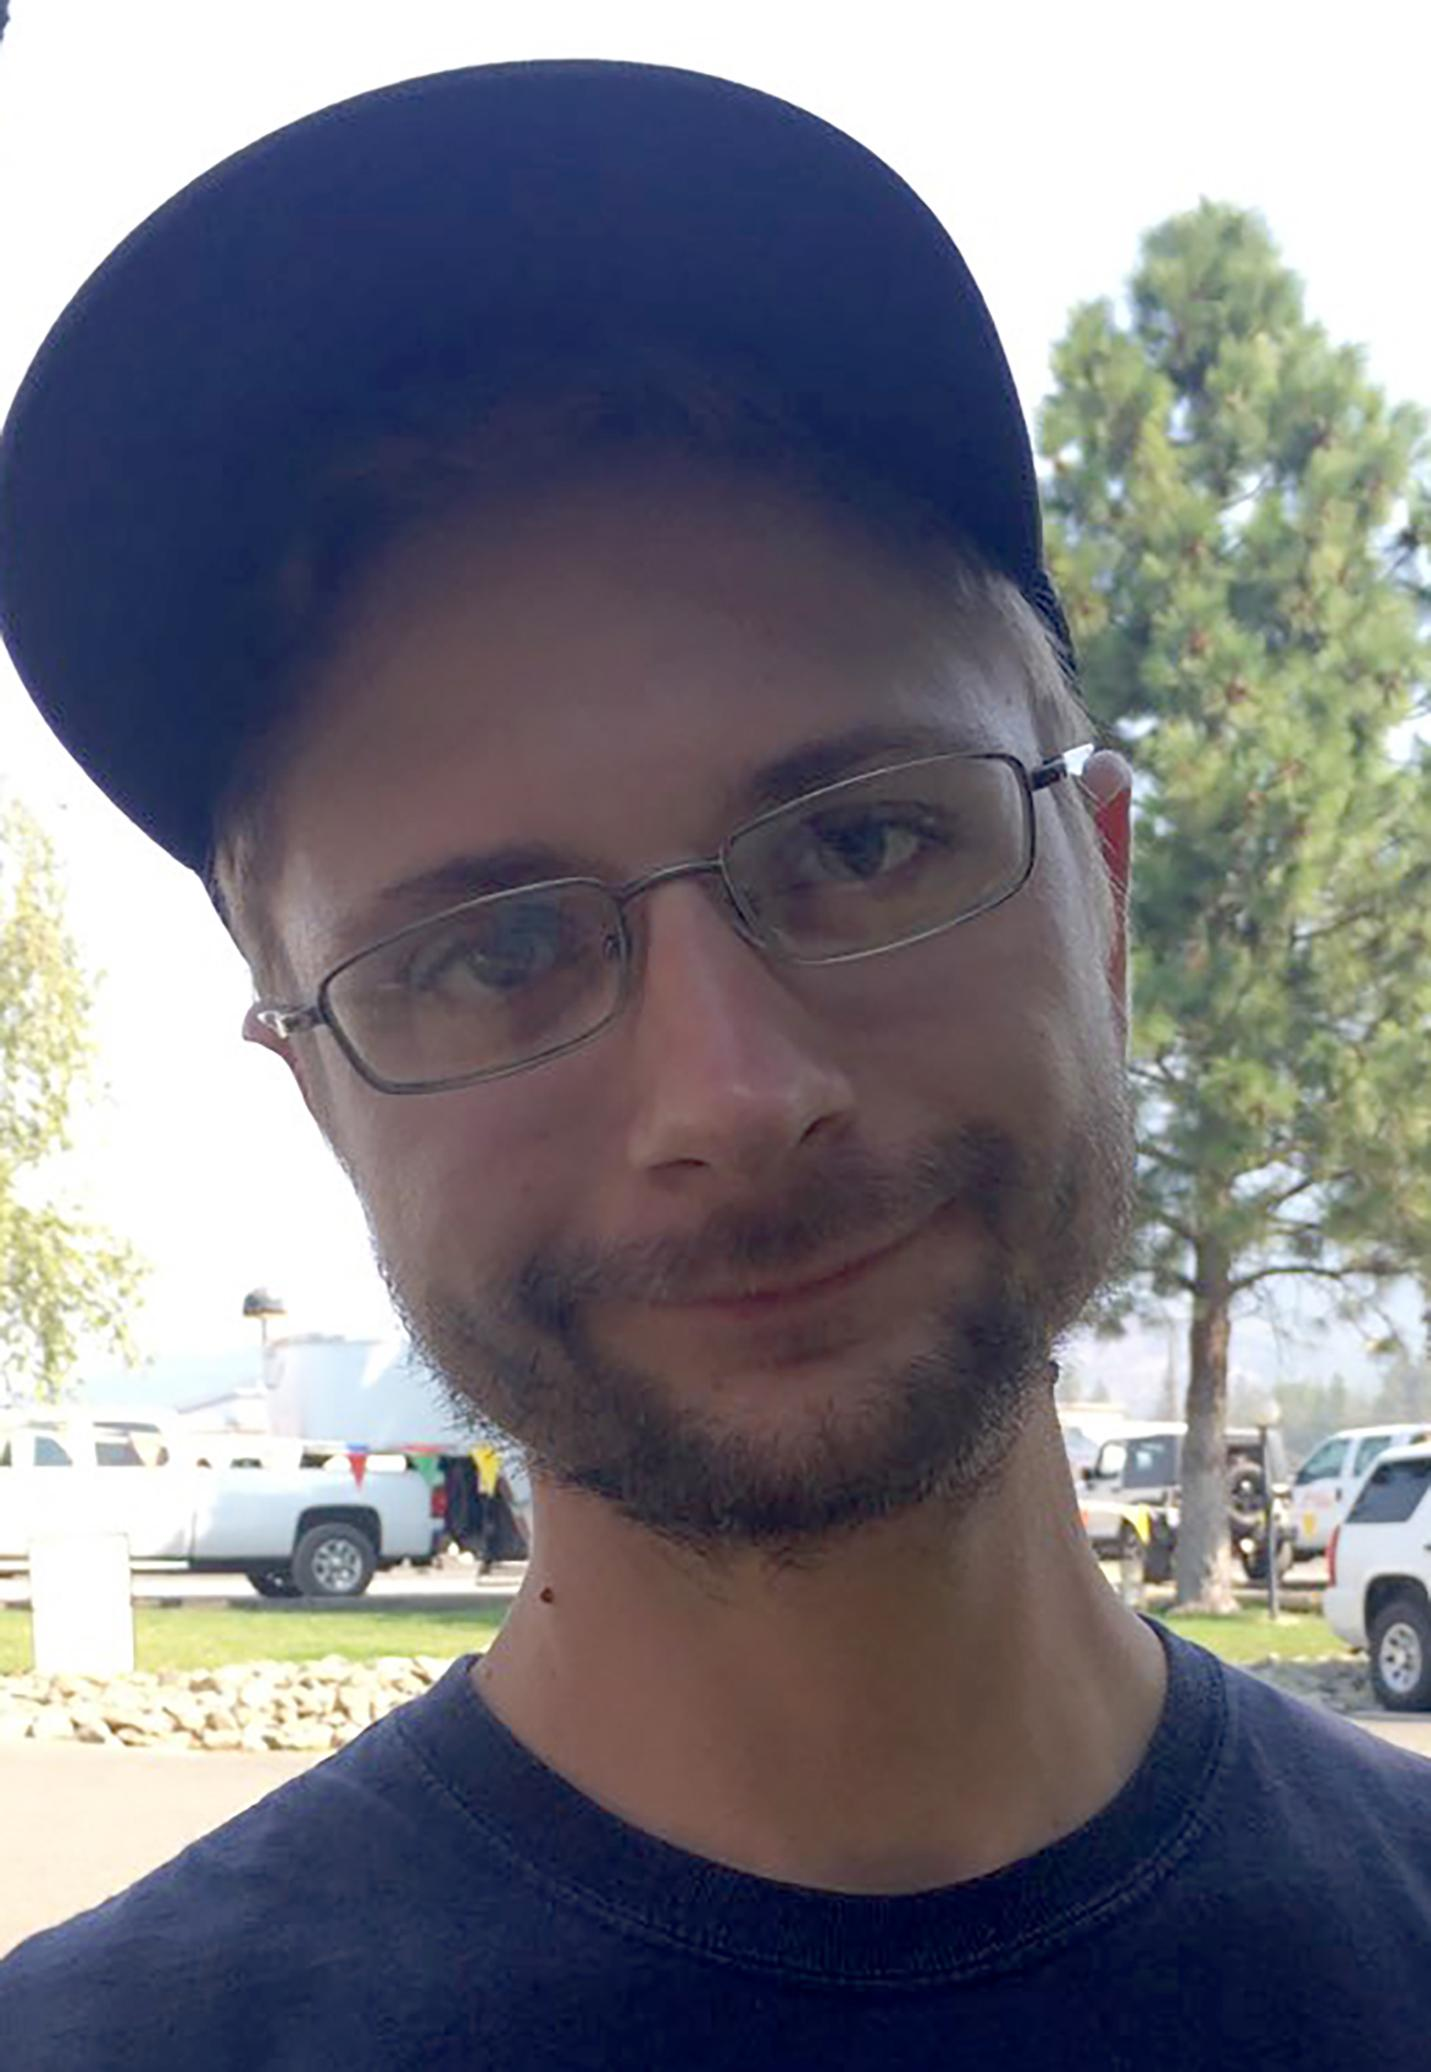 Ben Walen, 31, Grants Pass, Hugo Road